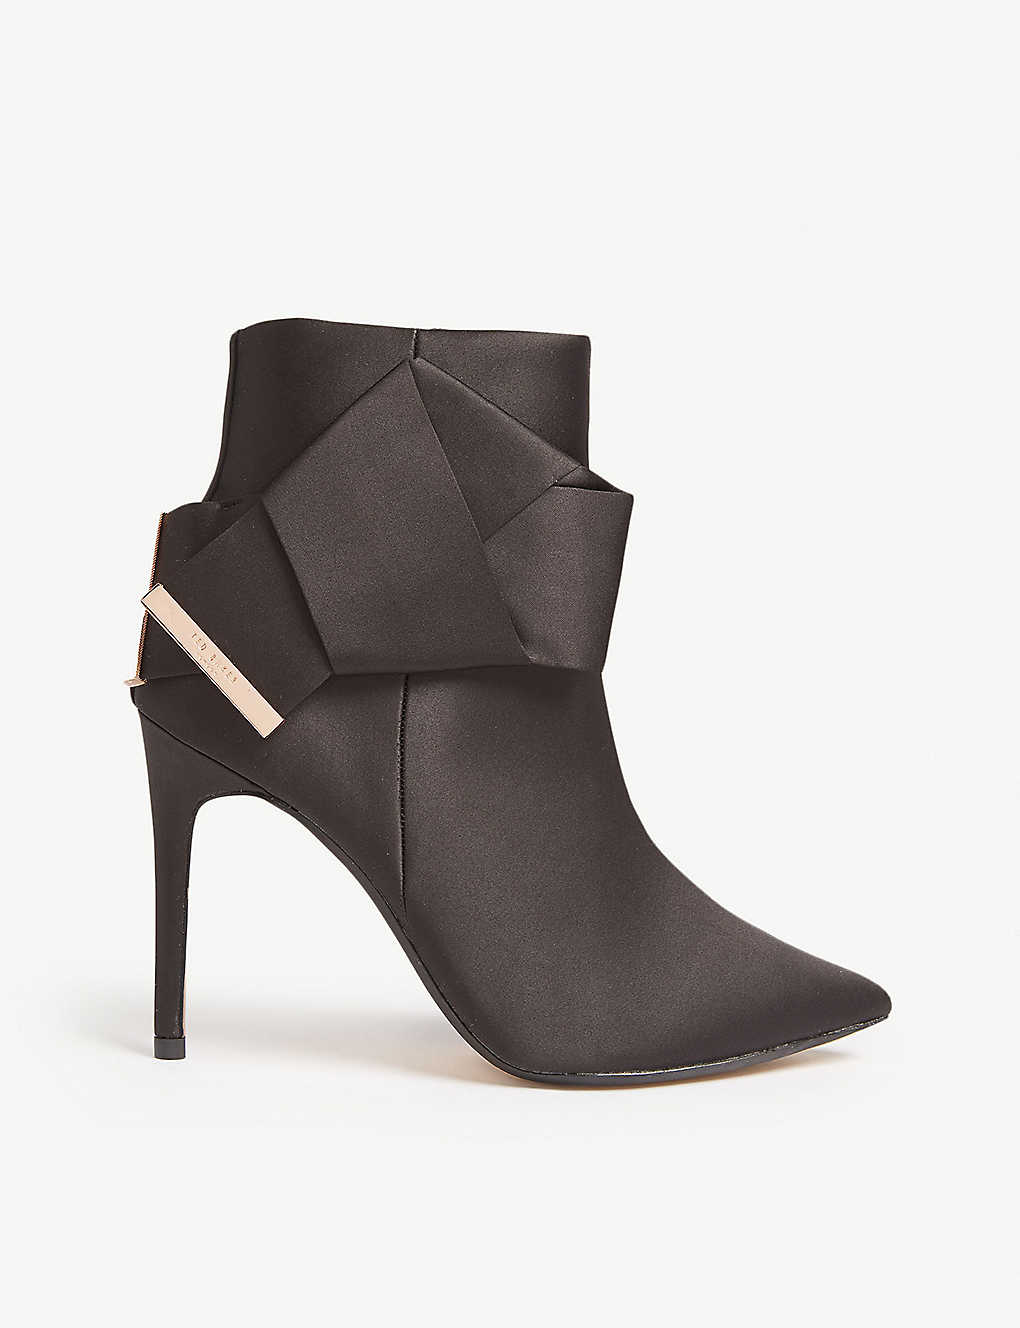 7a5dfa52cd6d TED BAKER - Celiah satin ankle boots